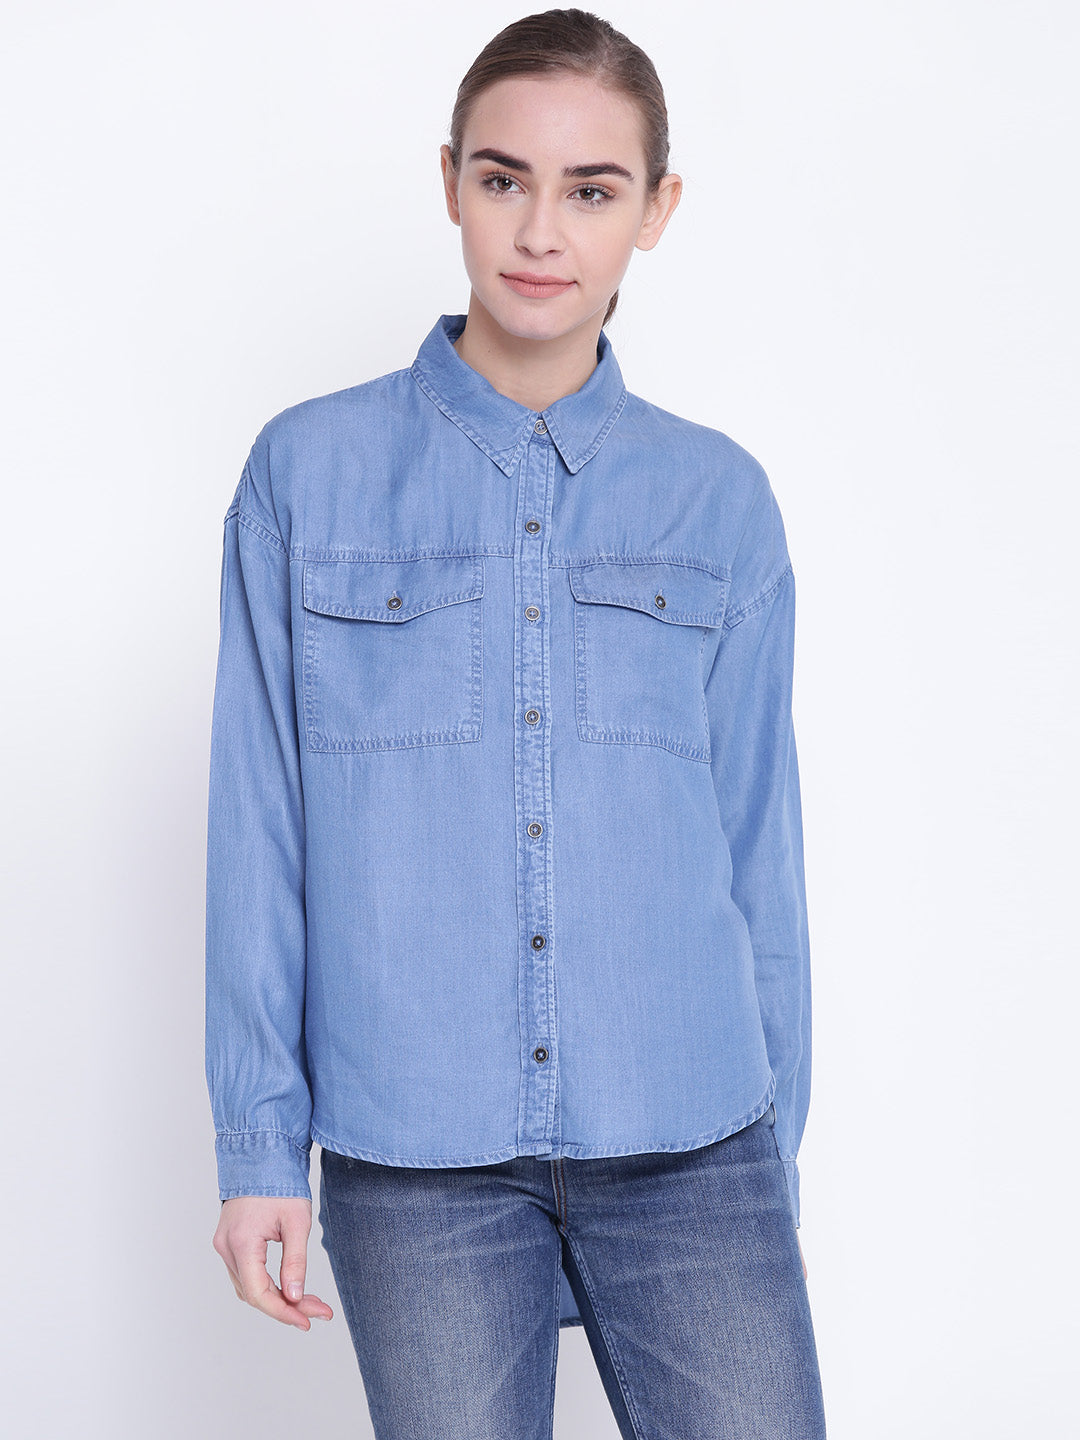 Women Blue Regular Fit Solid Denim Casual Shirt